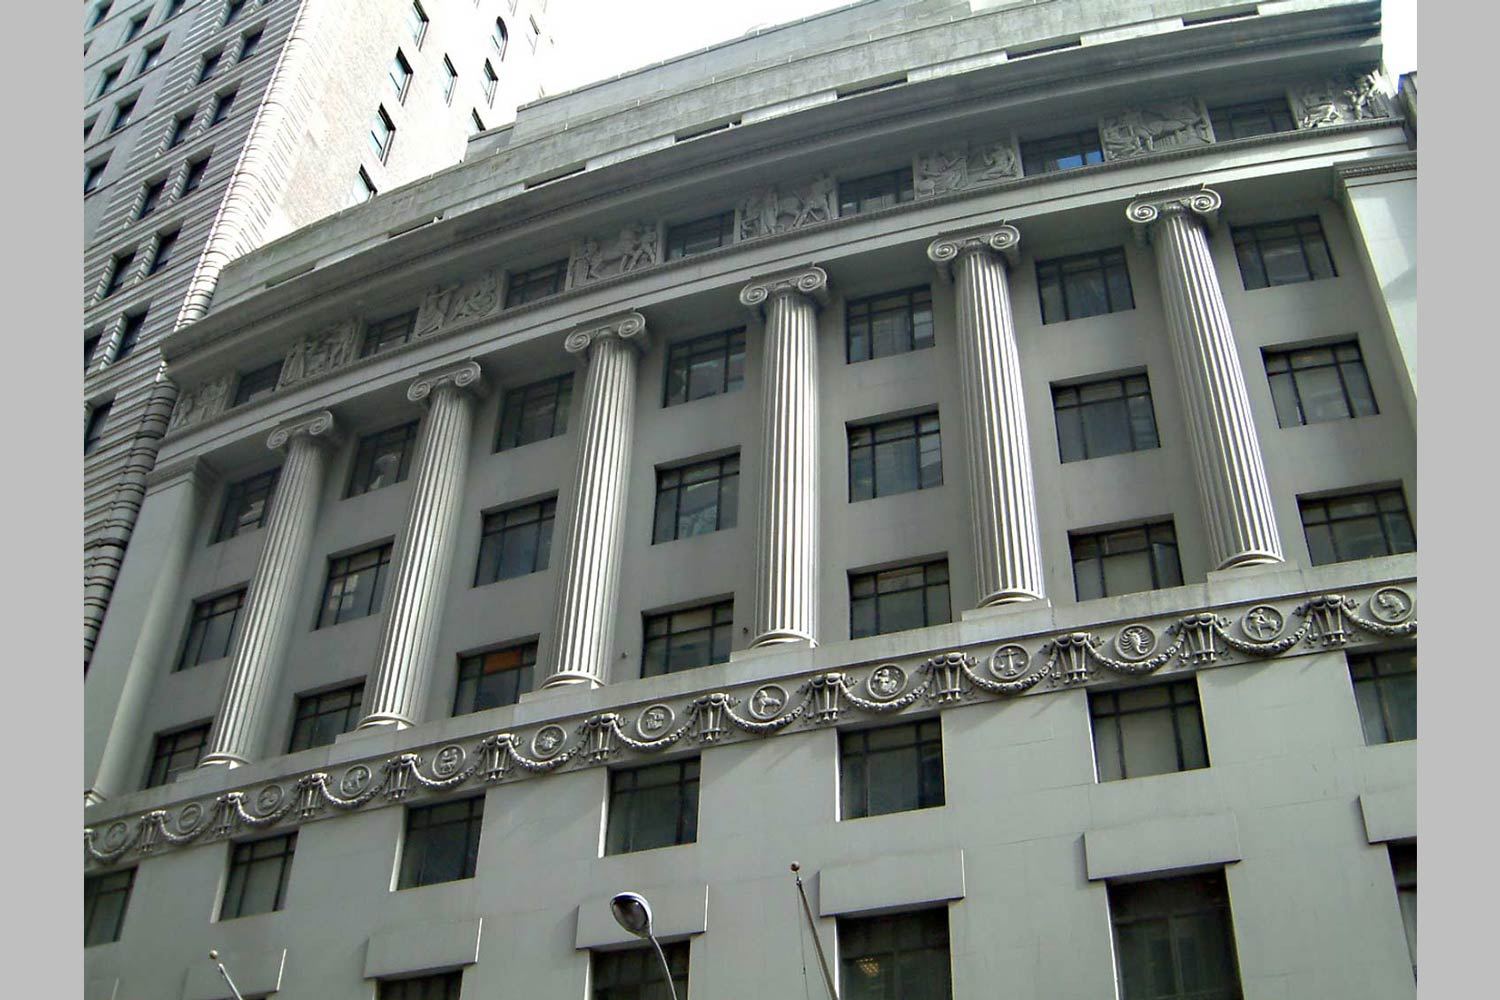 Restoration and conversion of a historic bank building in the Wall Street area to a K-8 school.